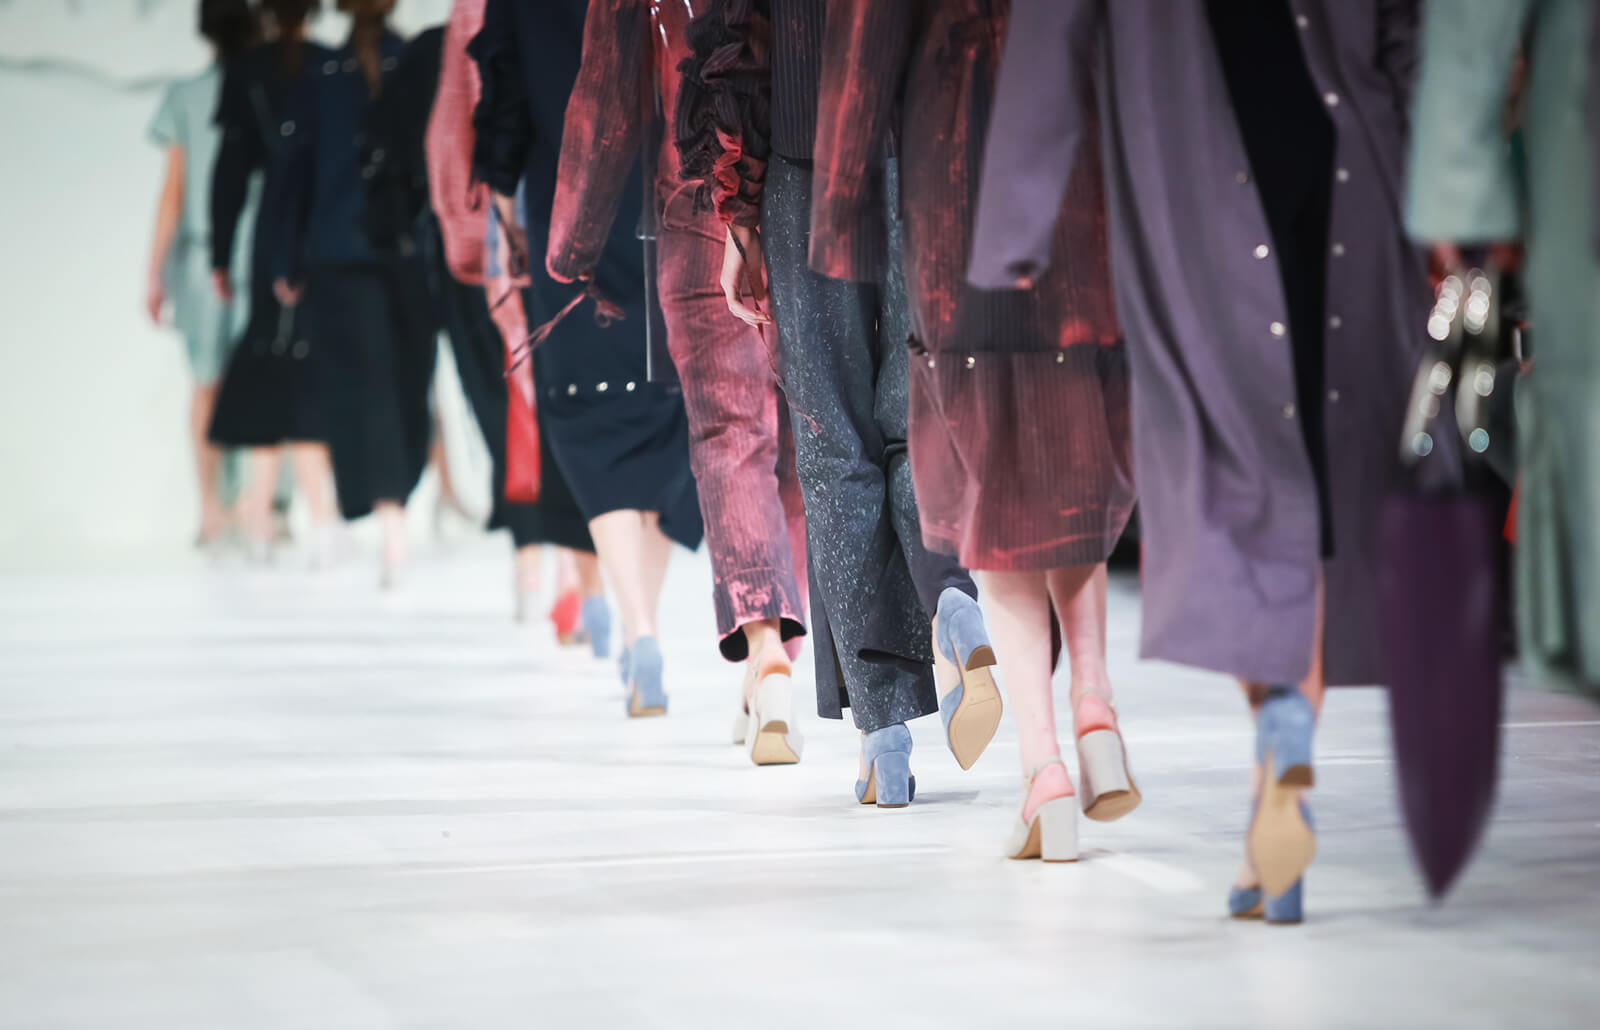 Top 9 fashion trends in world 2021